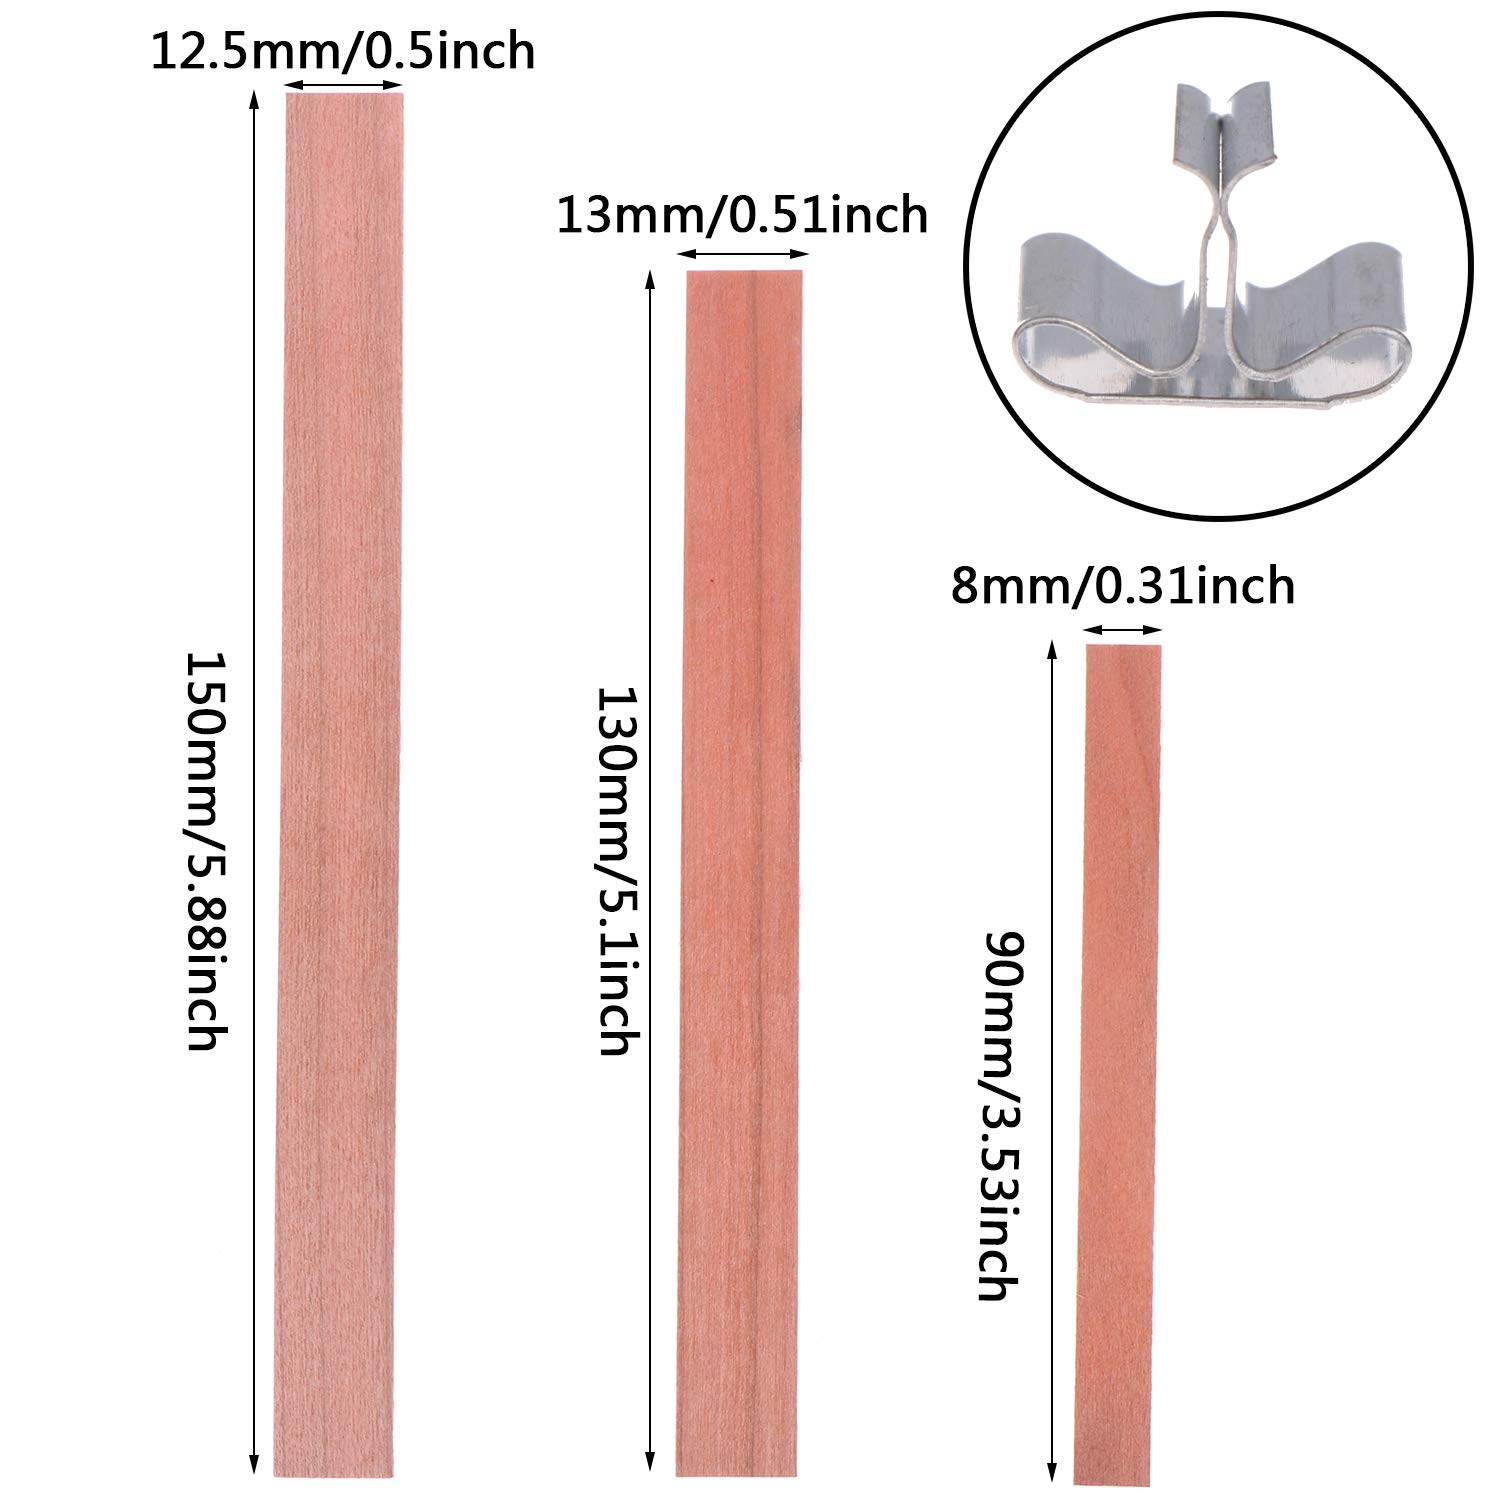 Xgood 120 PCS Wood Candle Wicks 3 Sizes Environmental-Friendly Candle Core Natural Wicks with 120 Pcs Metal Stands for Candle Making,DIY Candle Crafts 13x1.3cm+9x0.8cm +15x1.25cm